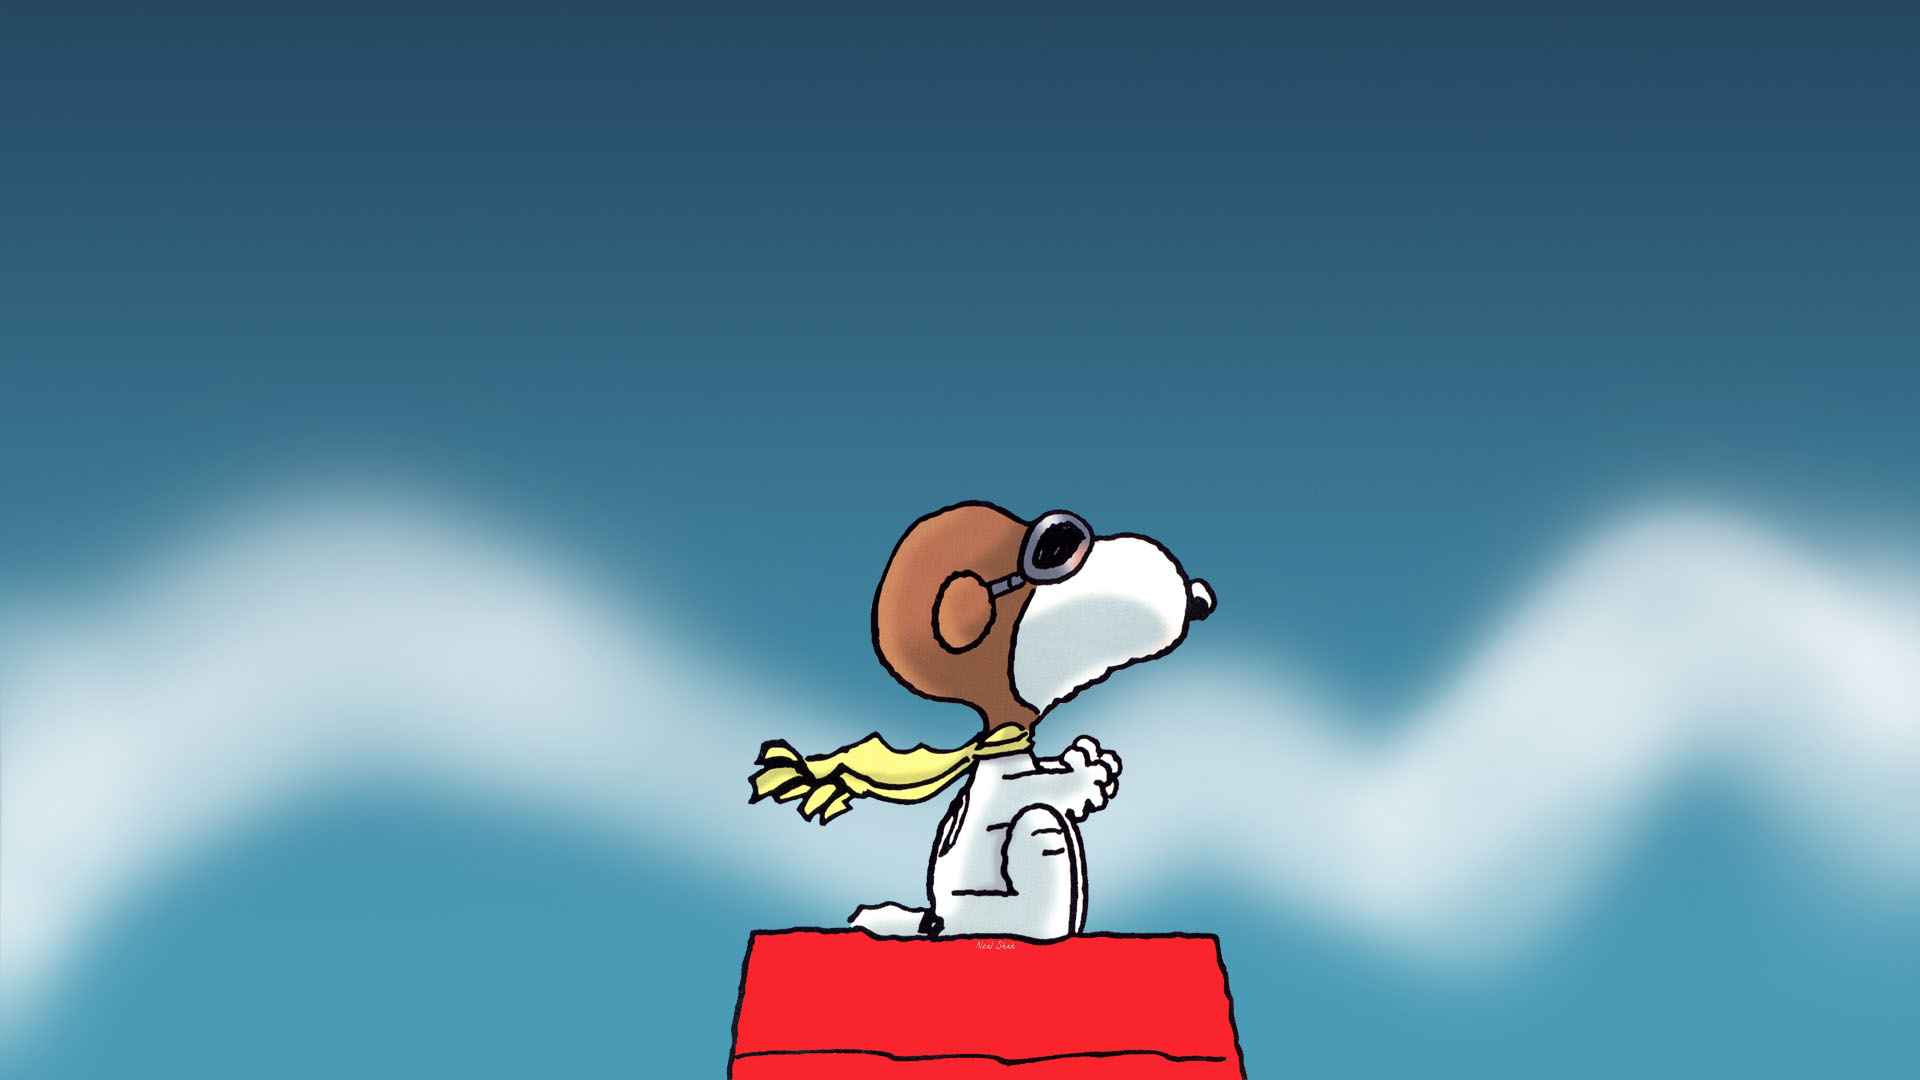 Snoopy wallpaper background 1920x1080